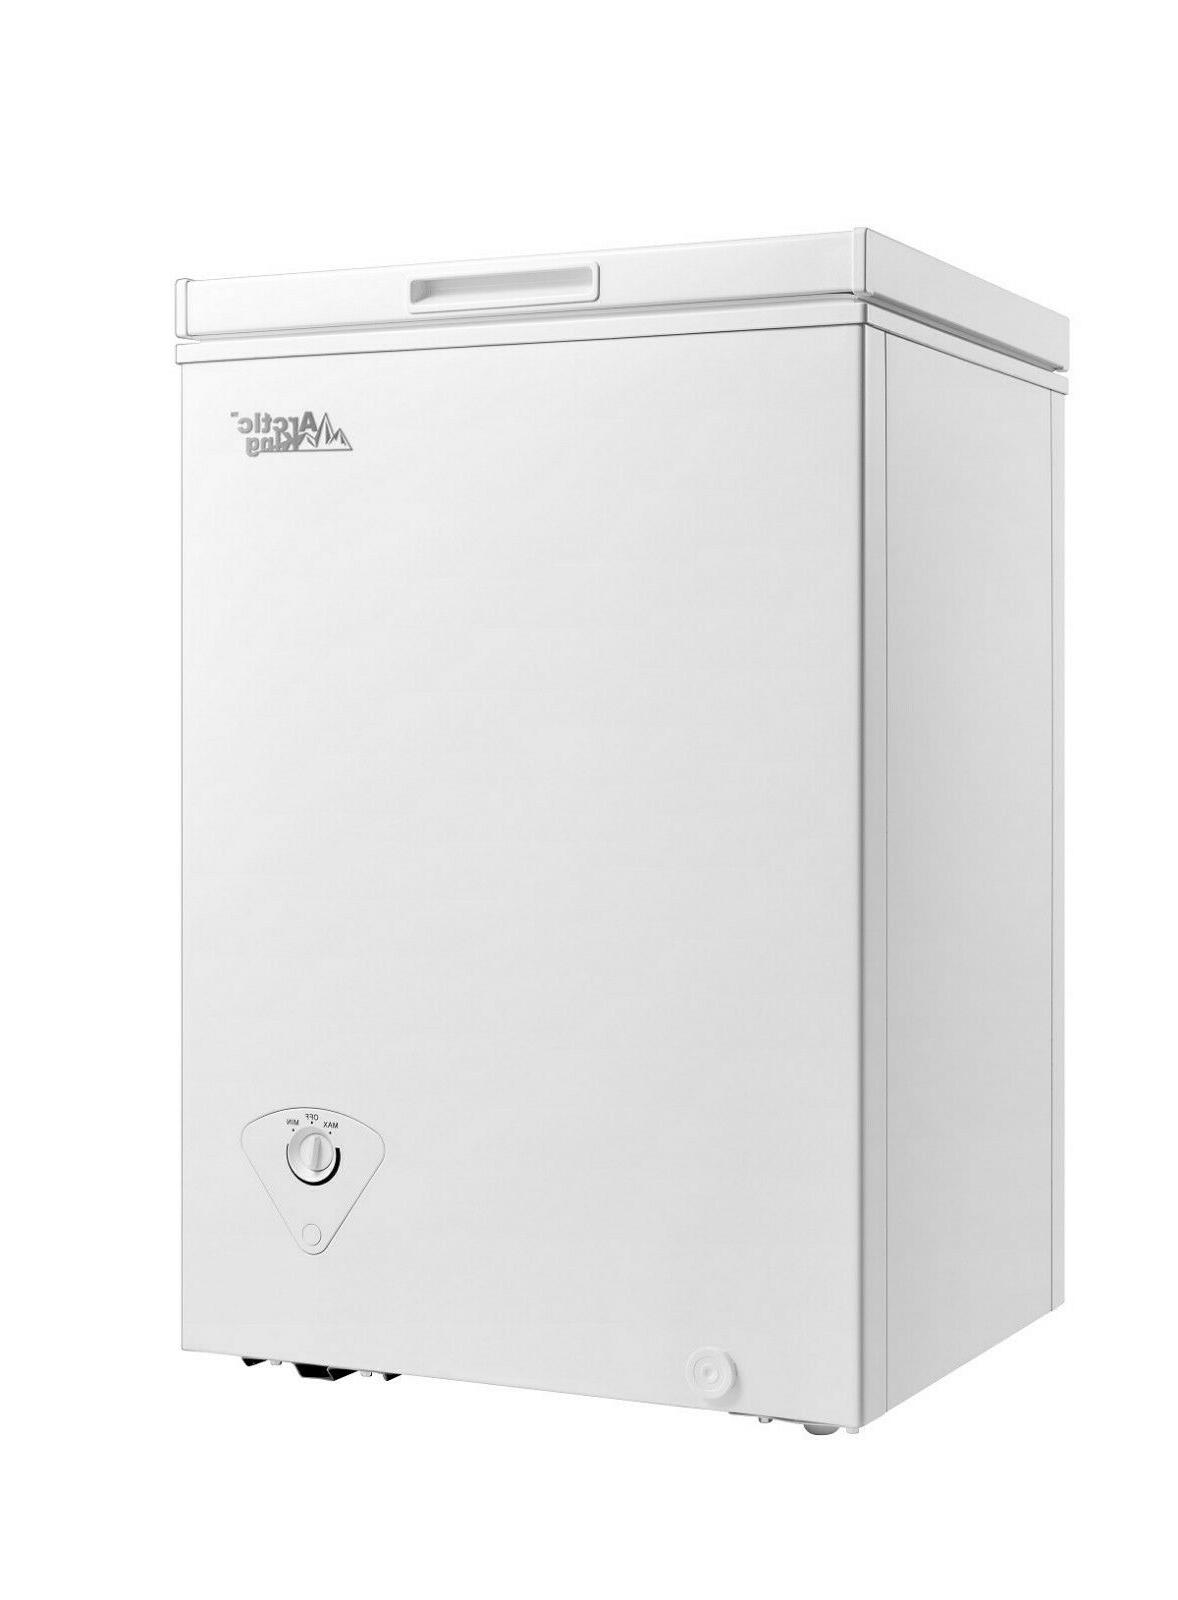 Arctic King cu ft Chest Freezer, Adjustable Thermostat